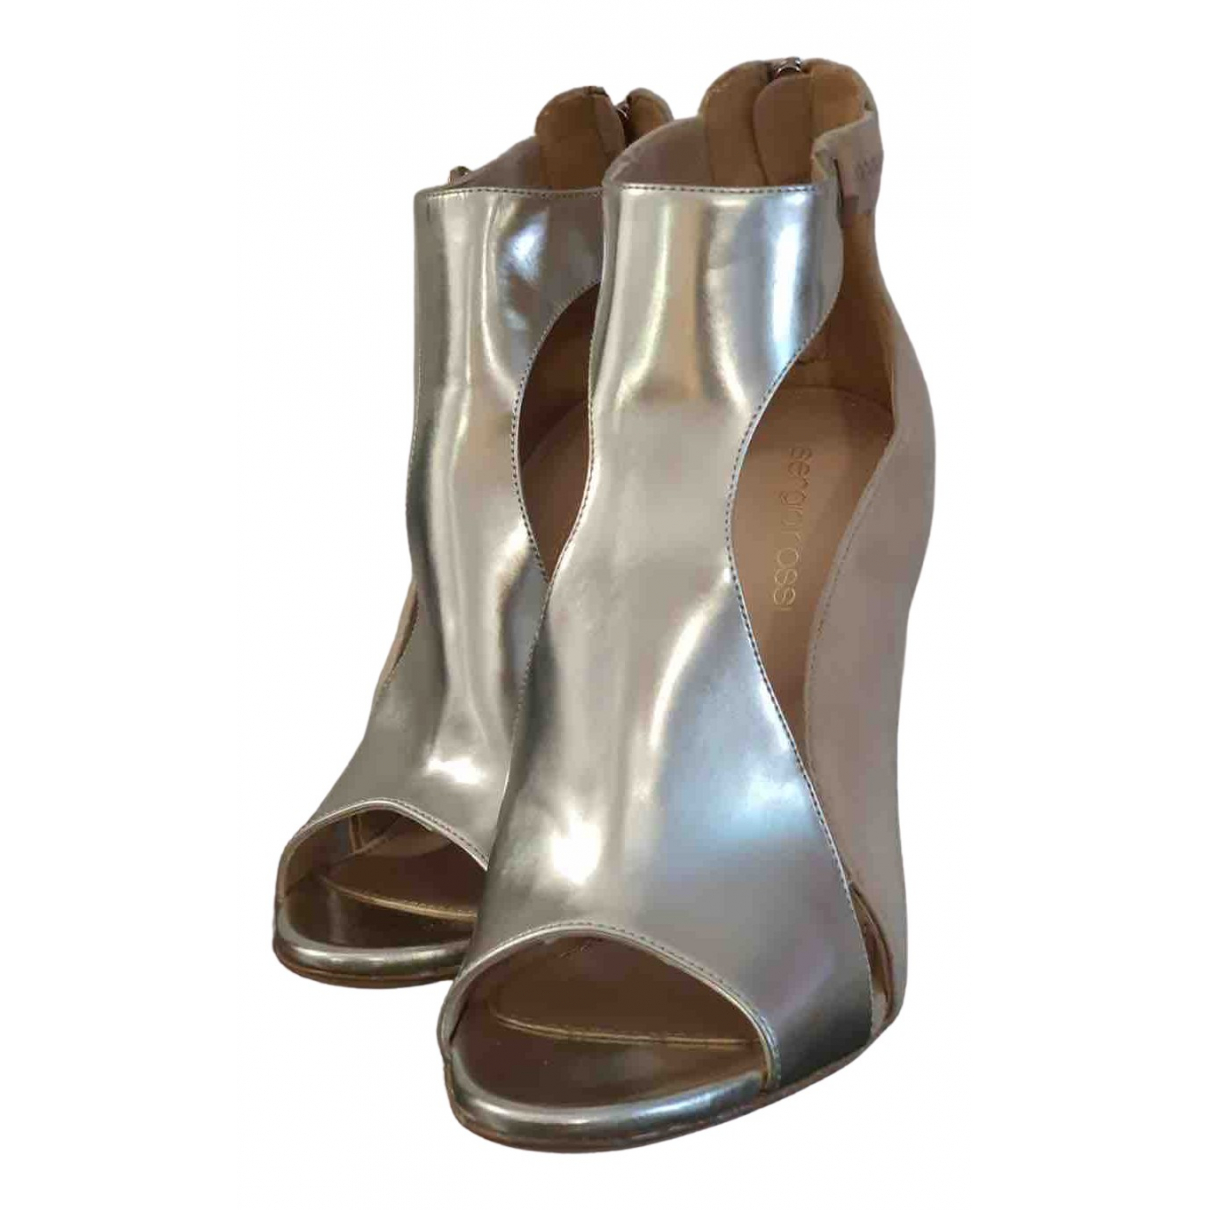 Sergio Rossi \N Silver Leather Sandals for Women 37.5 EU